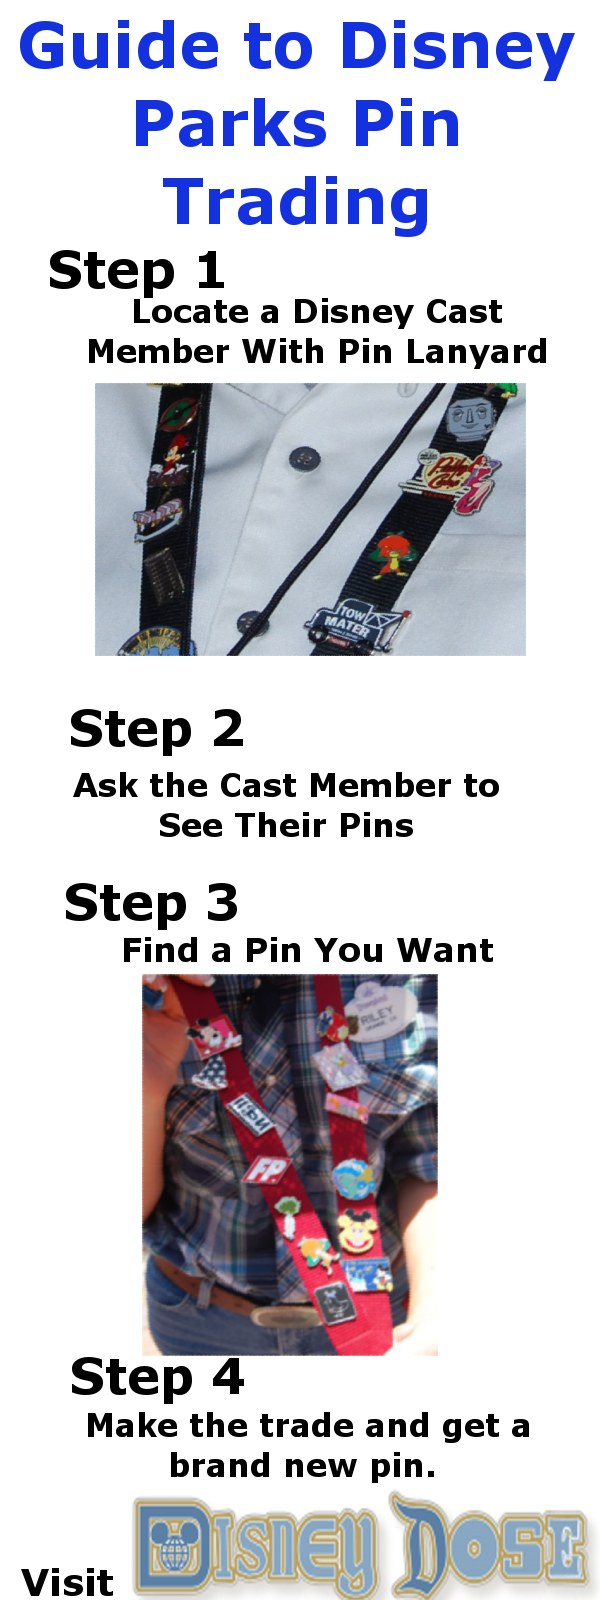 disney-pin-trading-infographic